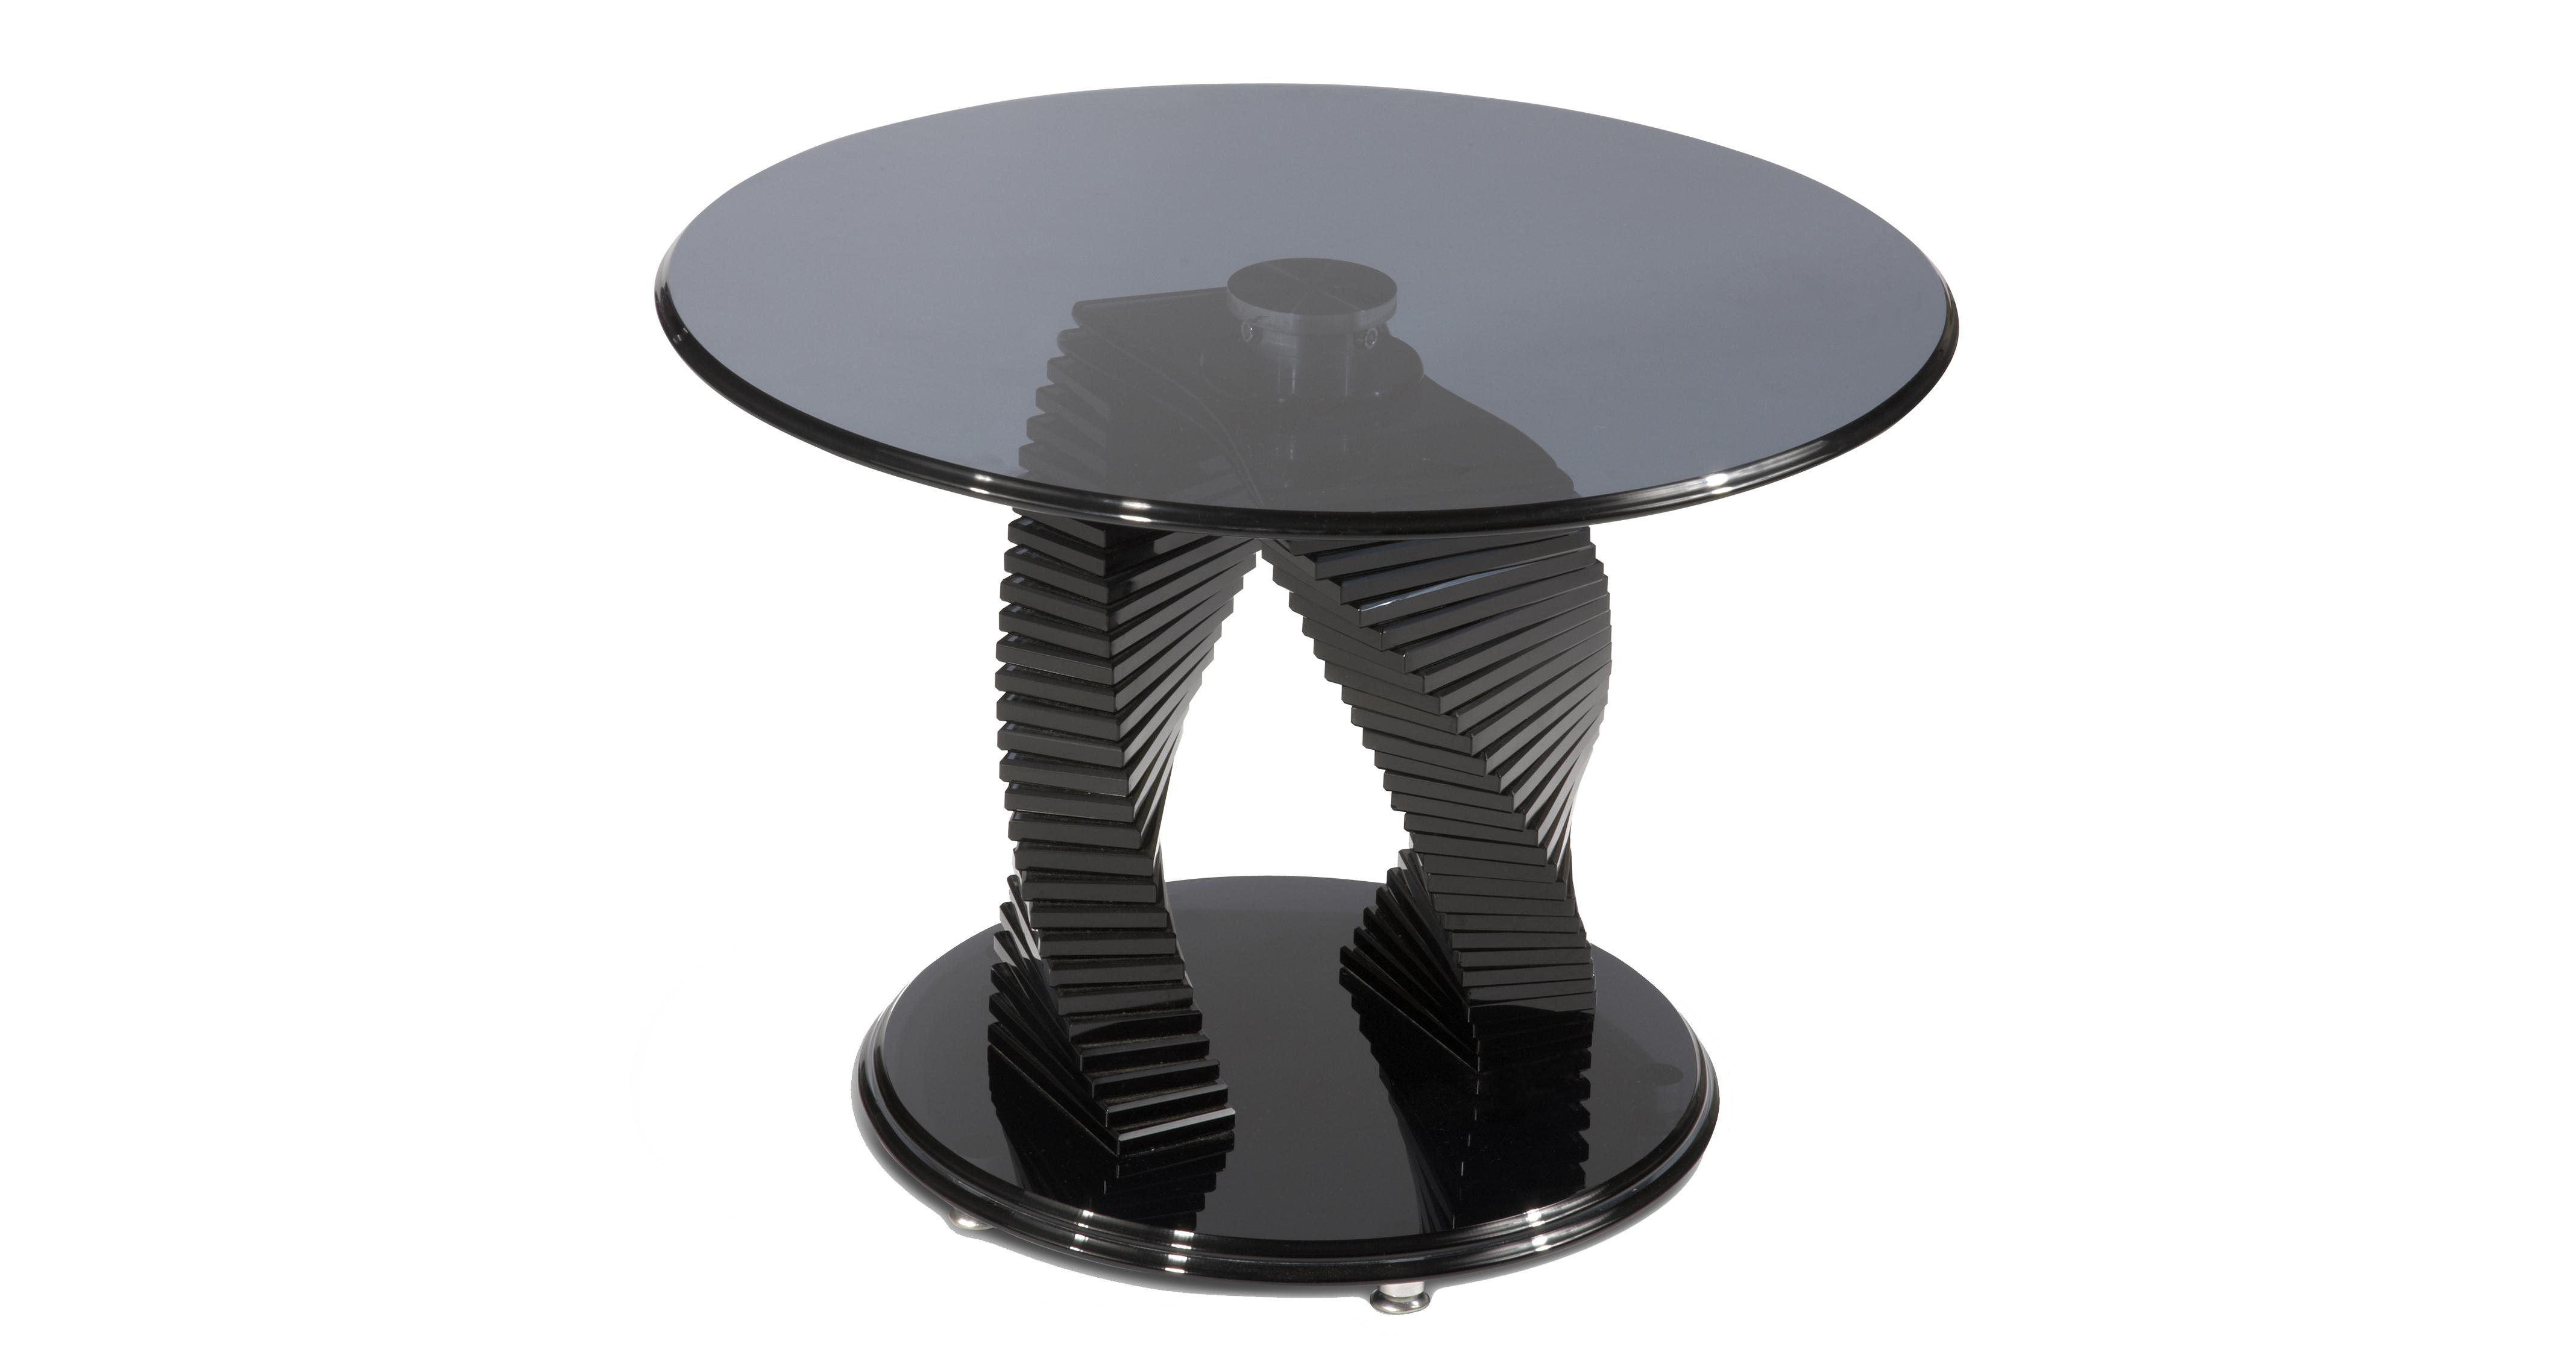 Tango lamp table dfs for Lamp table dfs